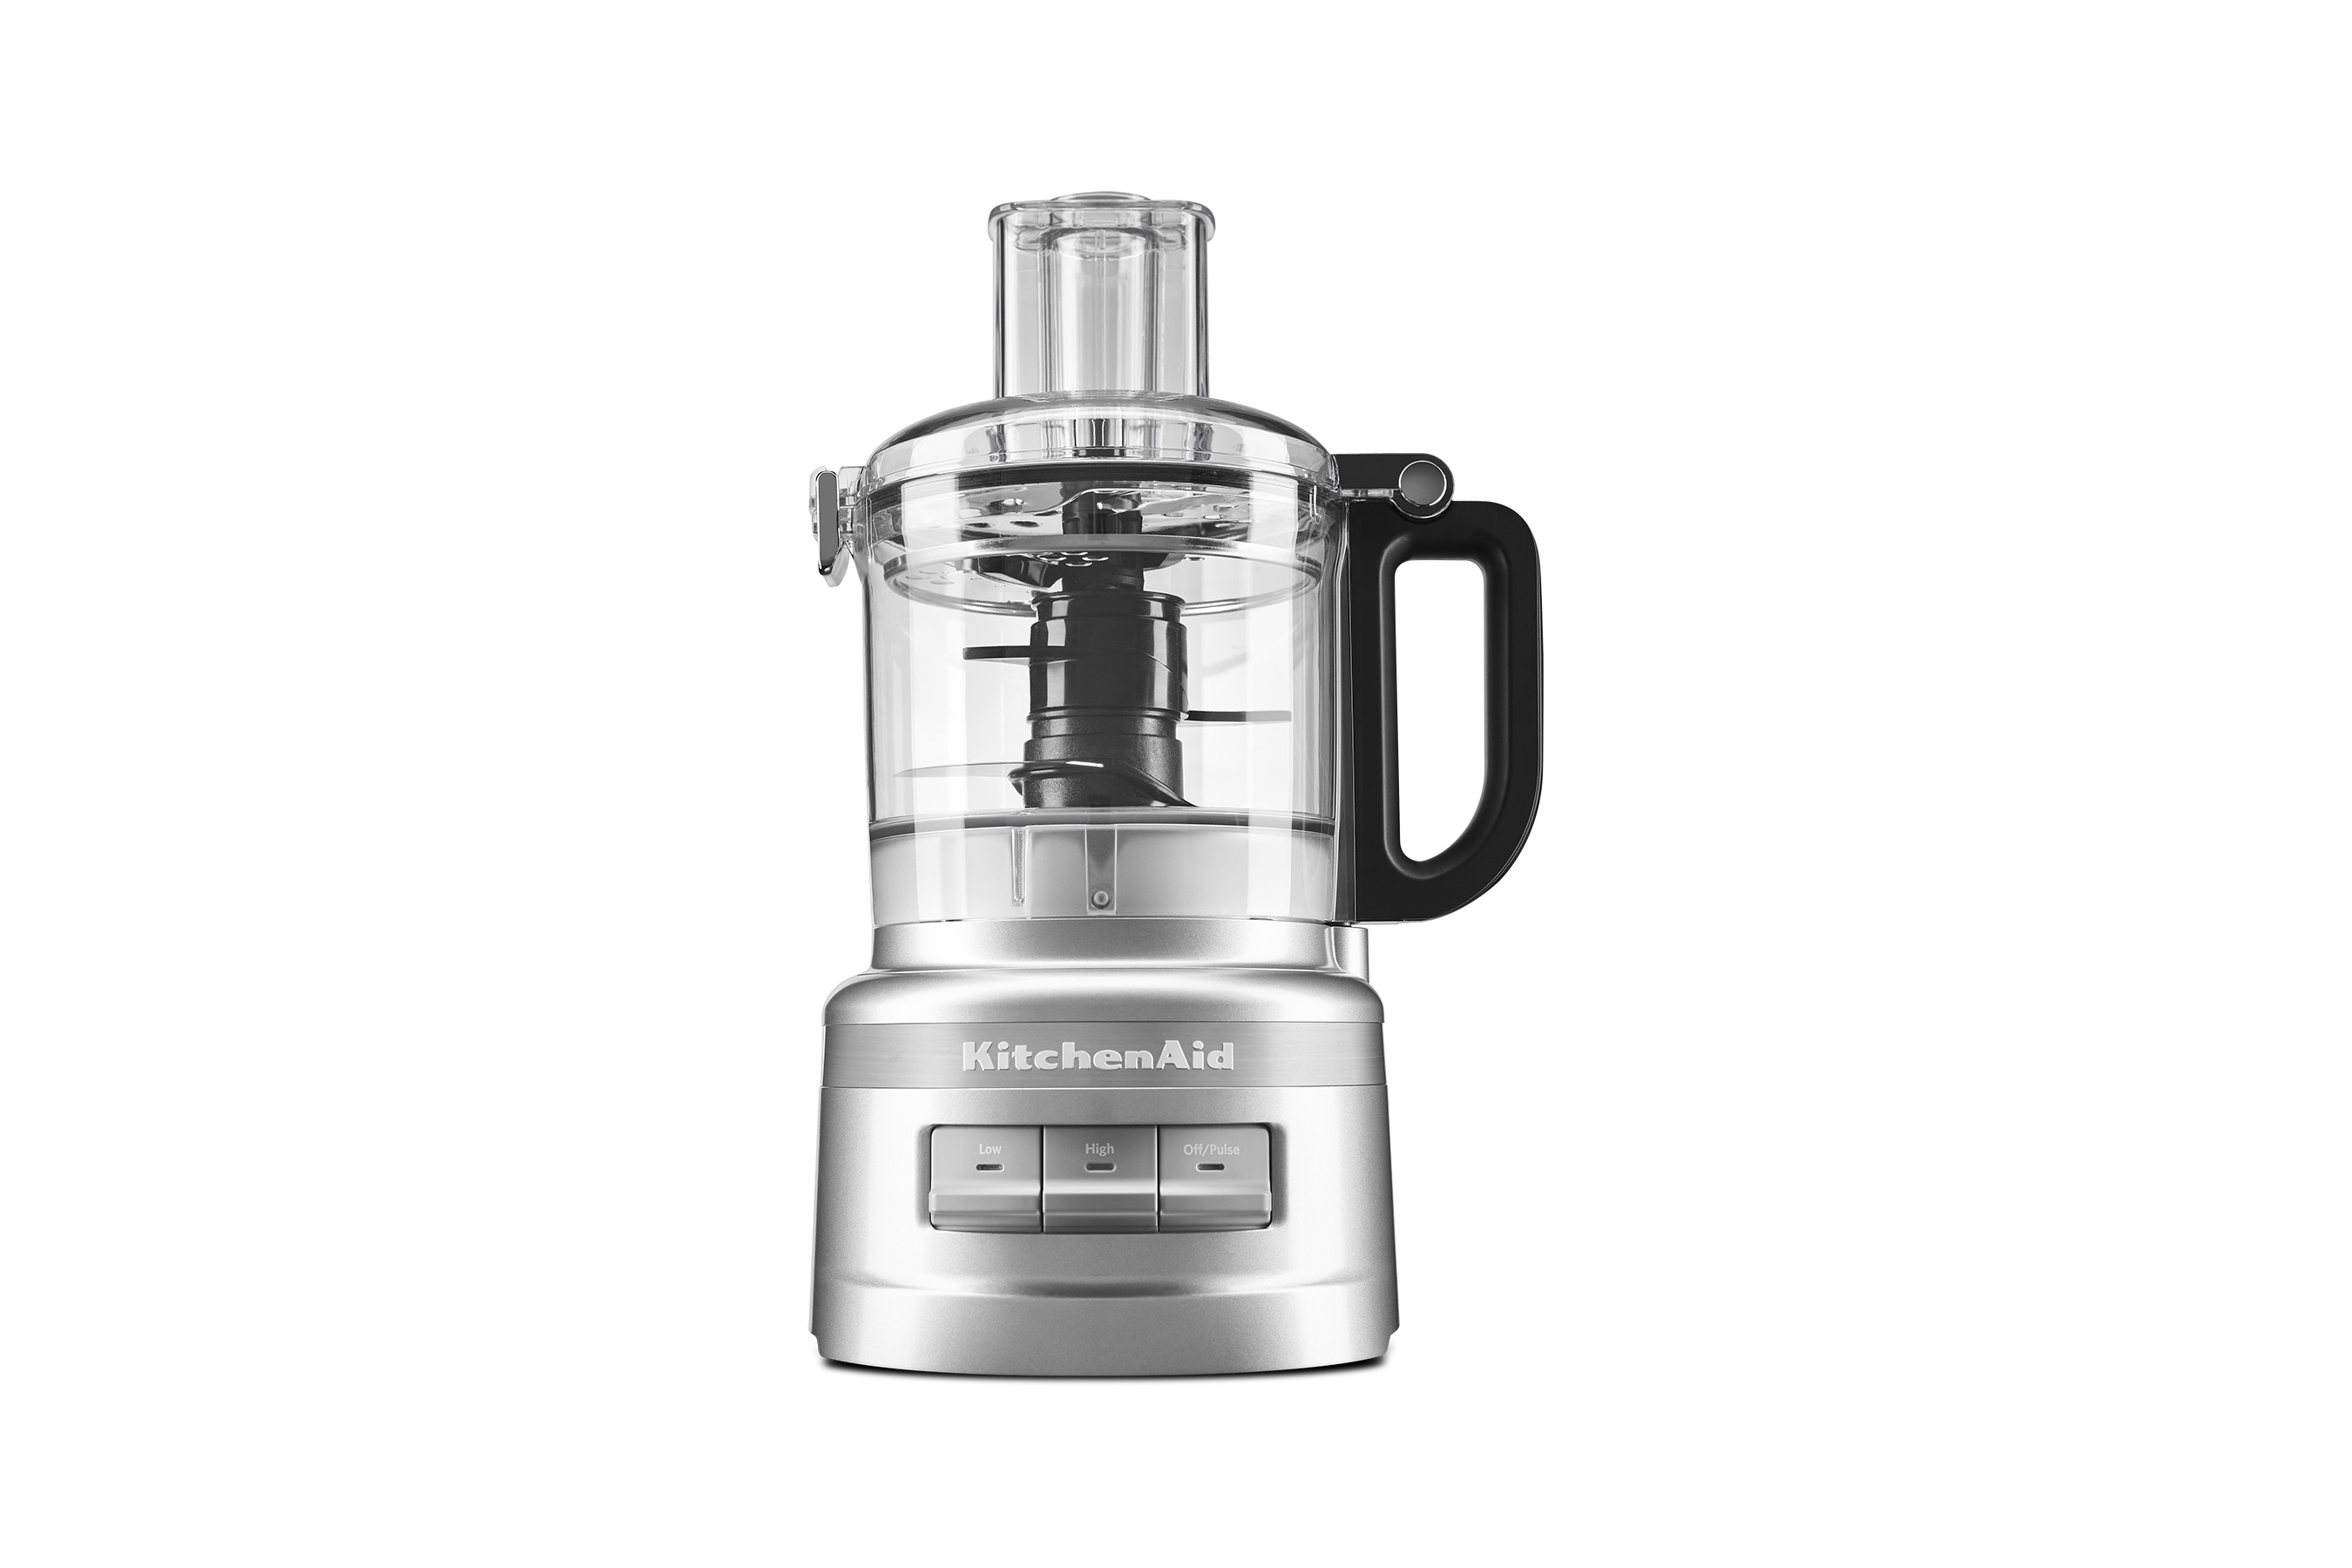 KitchenAid® Debuts New Products At 2018 Housewares Show